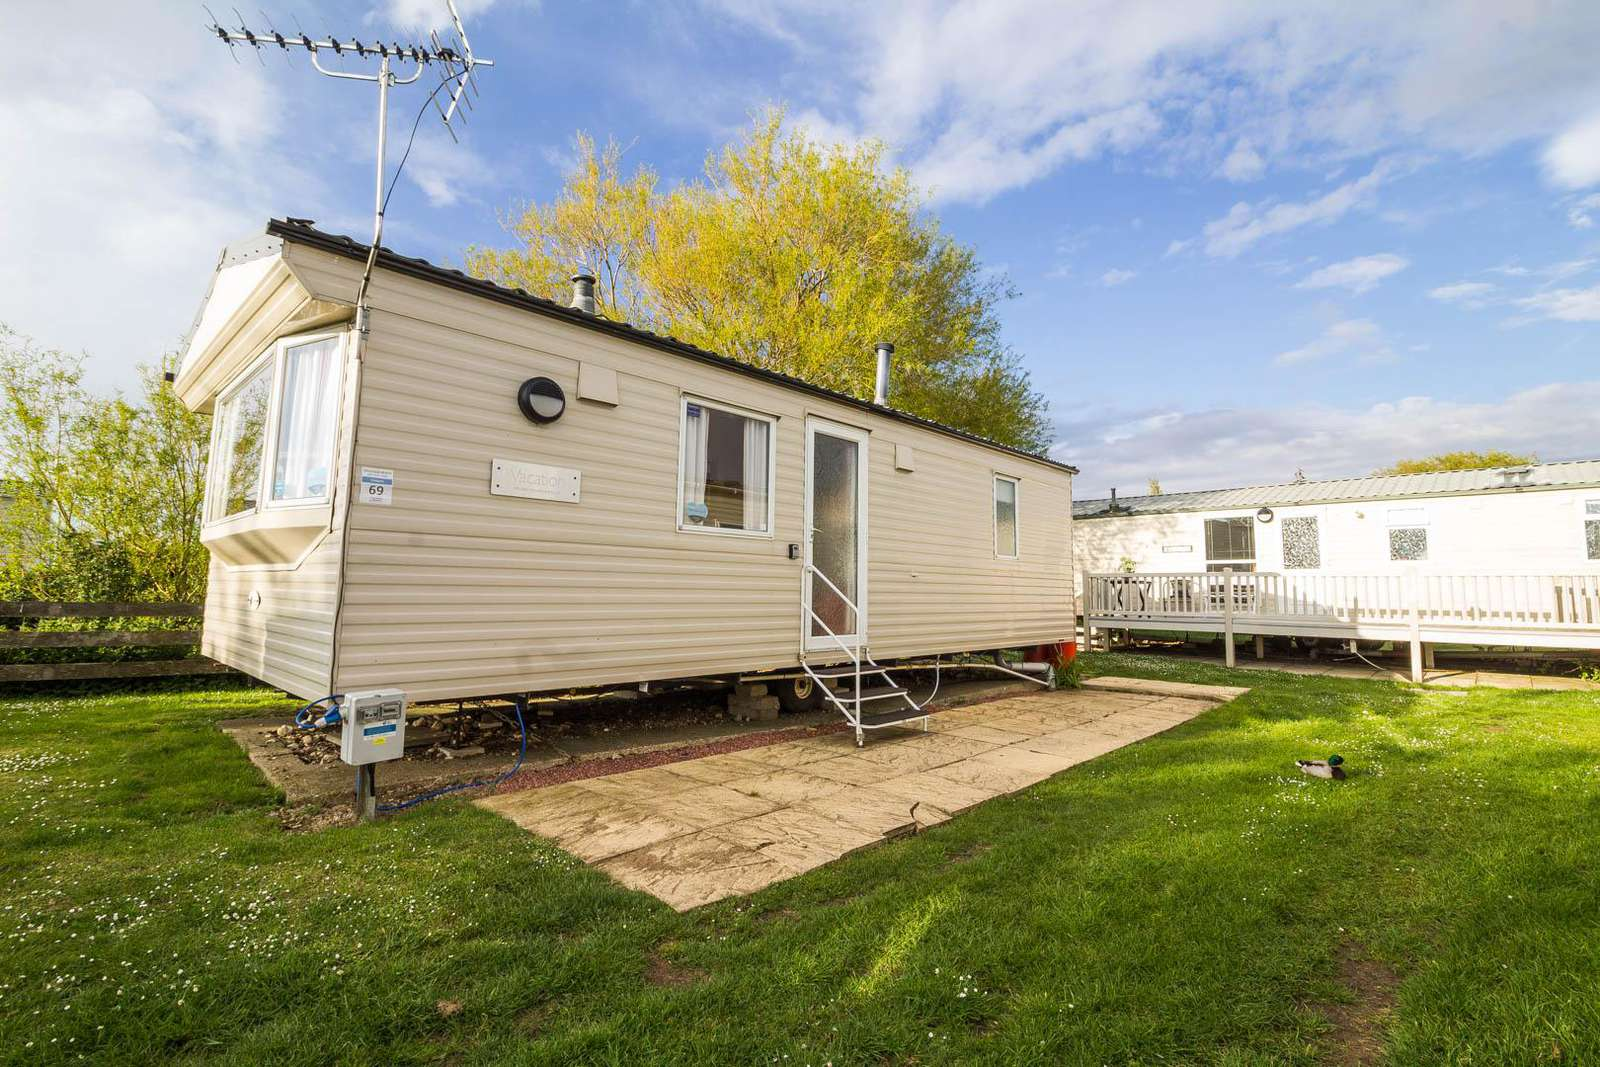 21069C – Chequers area, 2 bed, 6 berth caravan with panel heaters. Emerald rated. - property